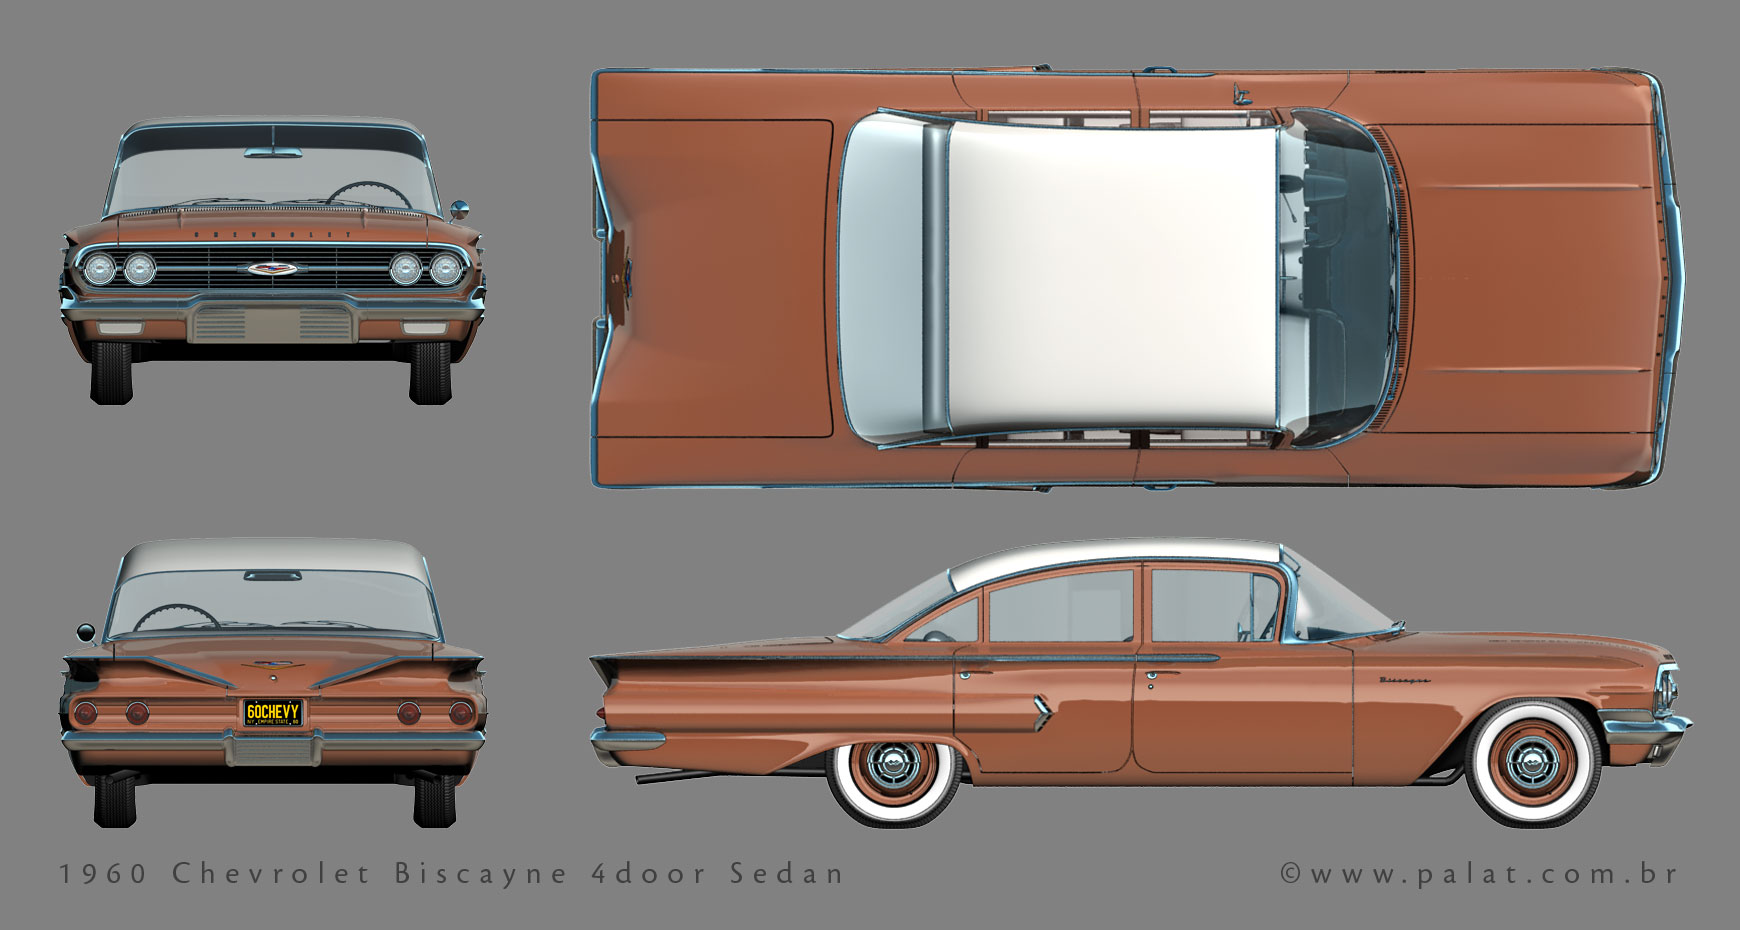 chevrolet biscayne 4 door sedan specs photos videos and more on topworldauto. Black Bedroom Furniture Sets. Home Design Ideas